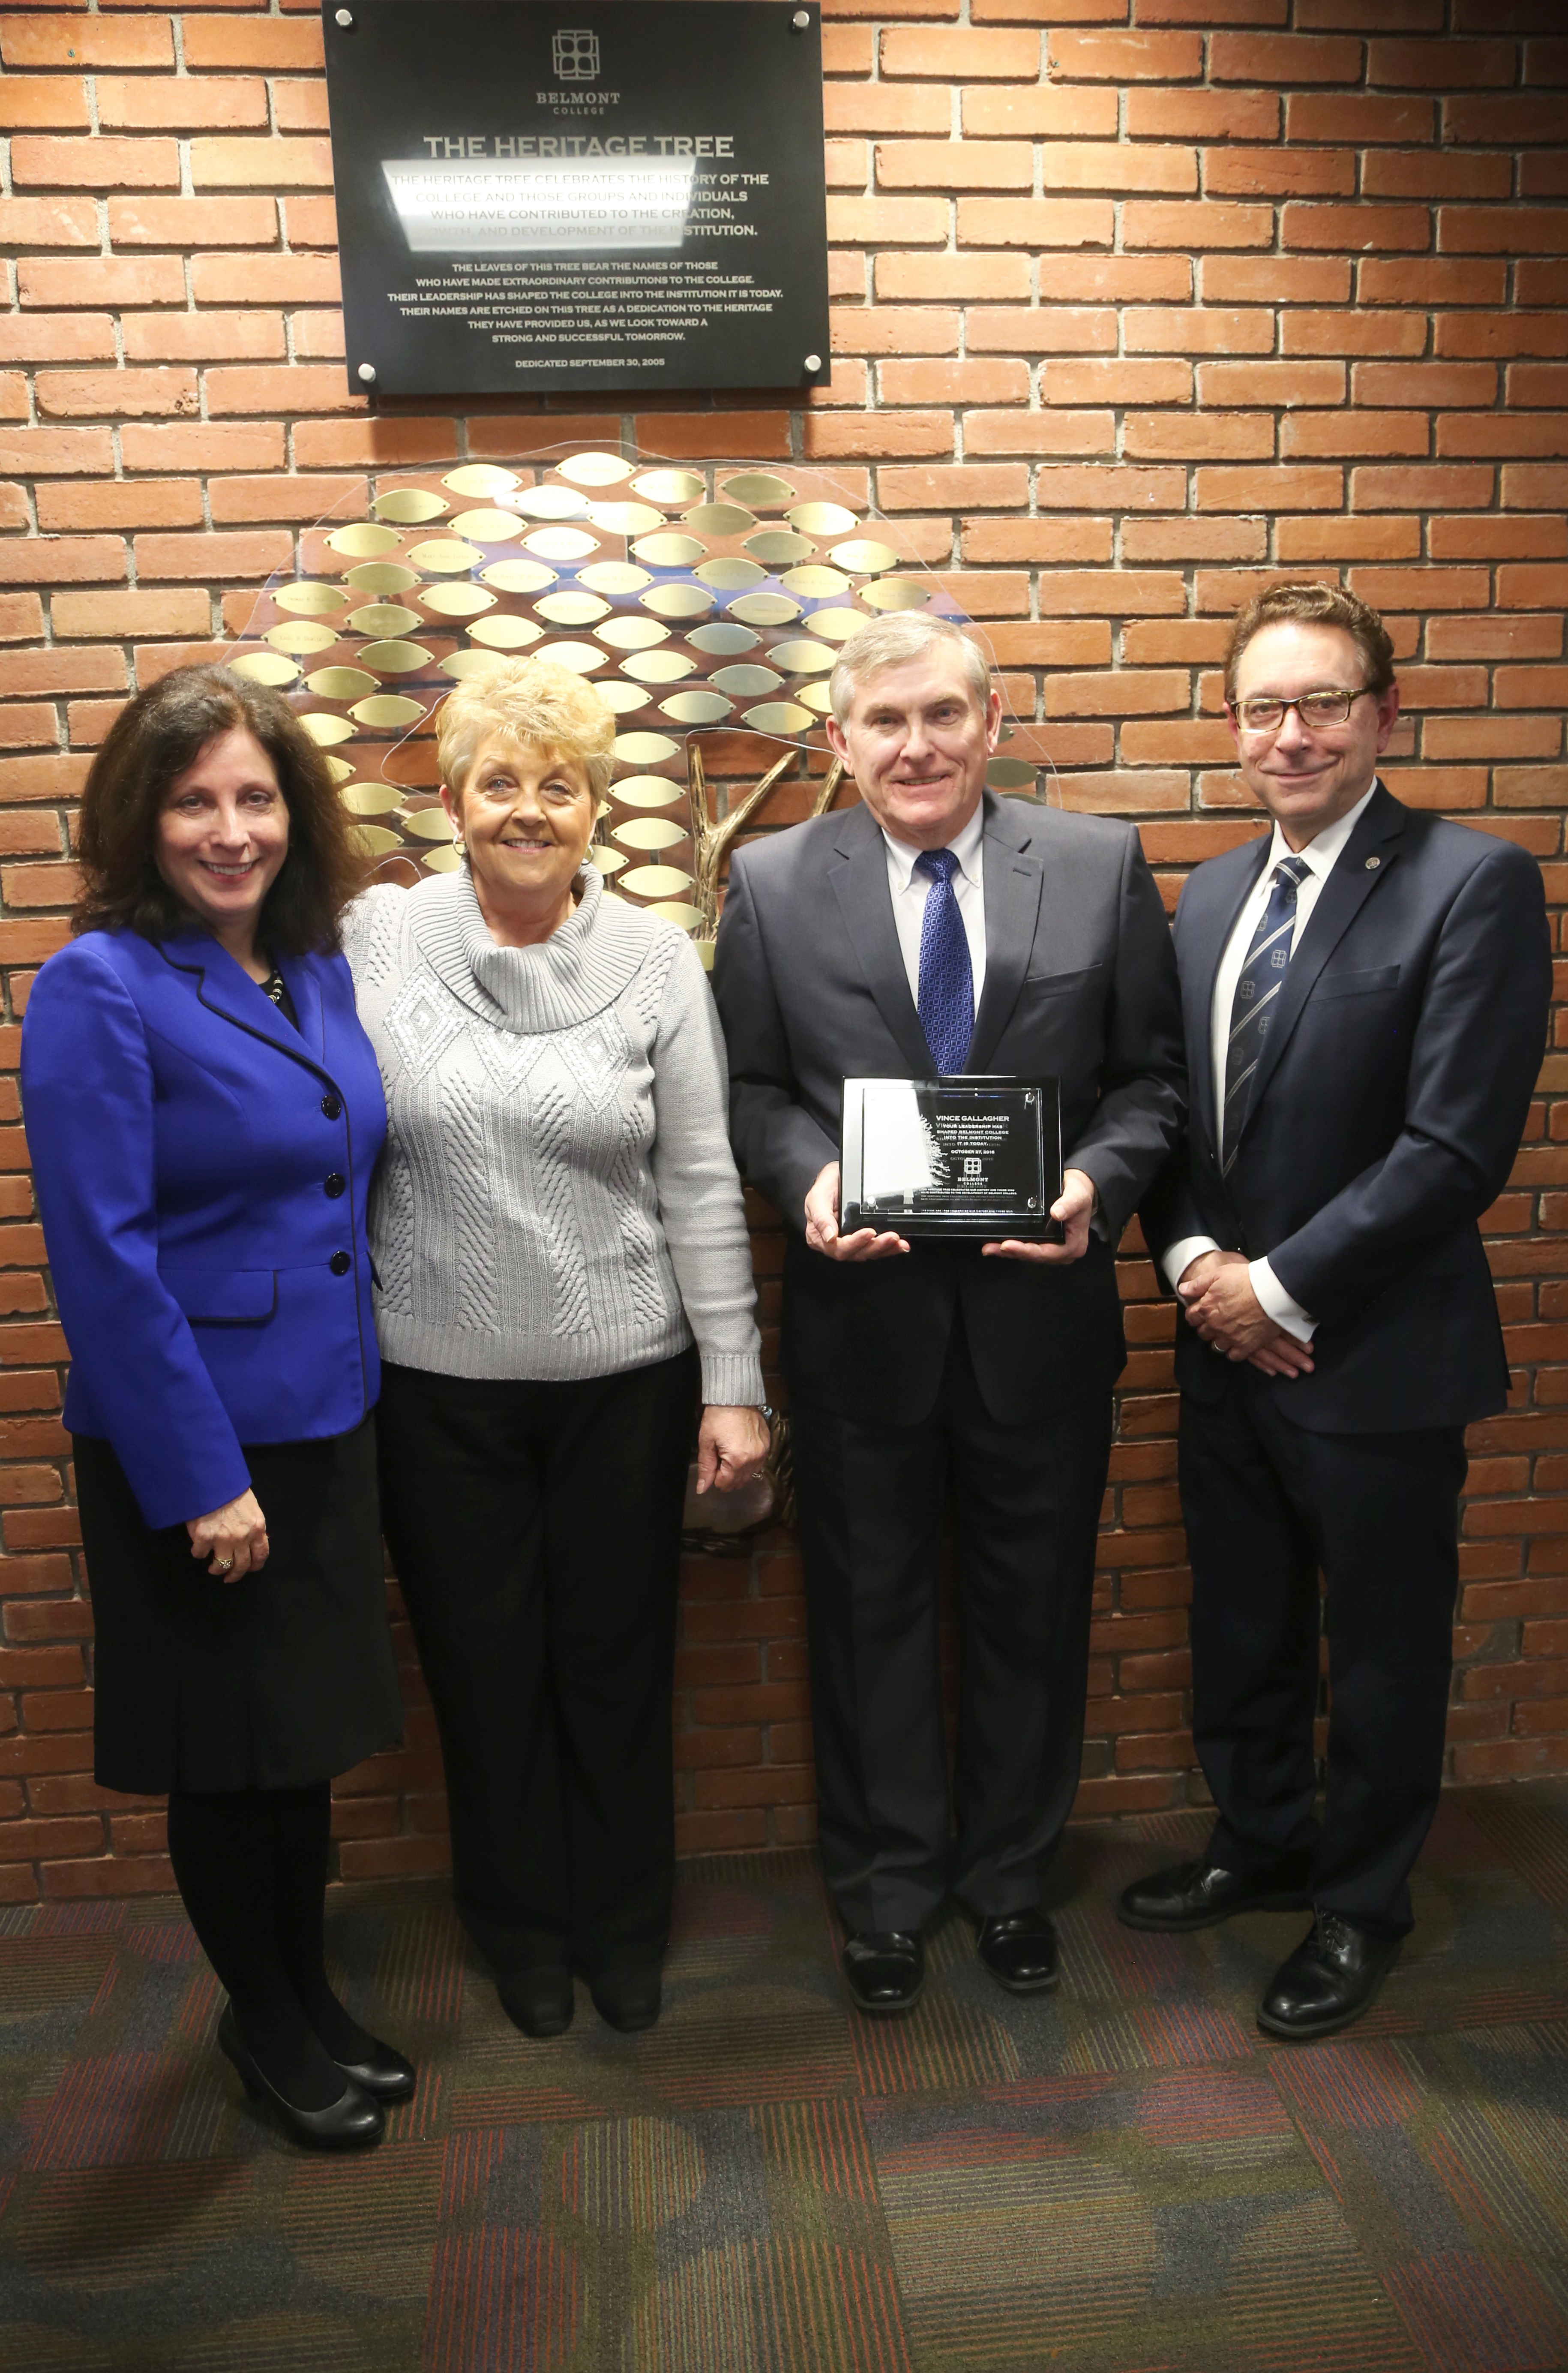 Photo caption (from left to right): Janet Jacobs, Foundation Board Chair; Mrs. Ann Gallagher; Mr. Vince Gallagher, Heritage Tree award recipient; and Dr. Paul Gasparro, Belmont College President.